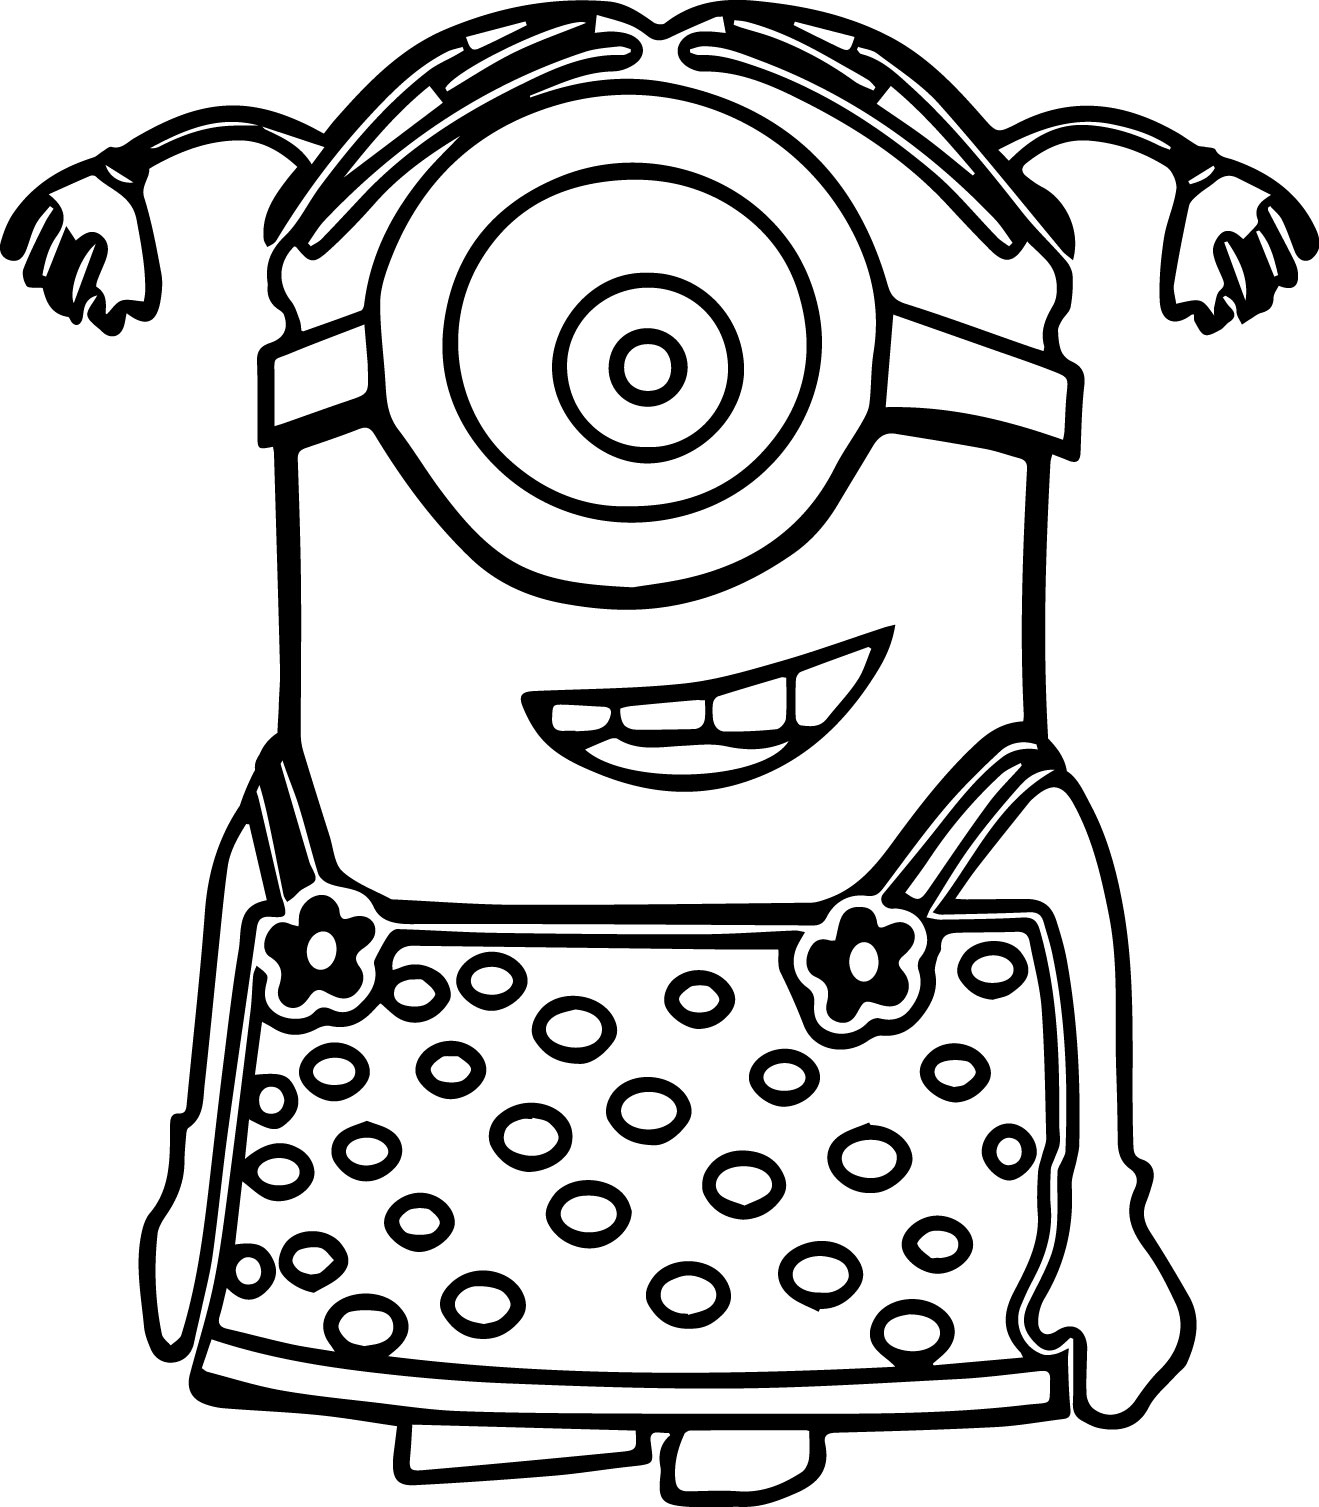 minion coloring book minions coloring pages free printable minions coloring pages minion coloring book